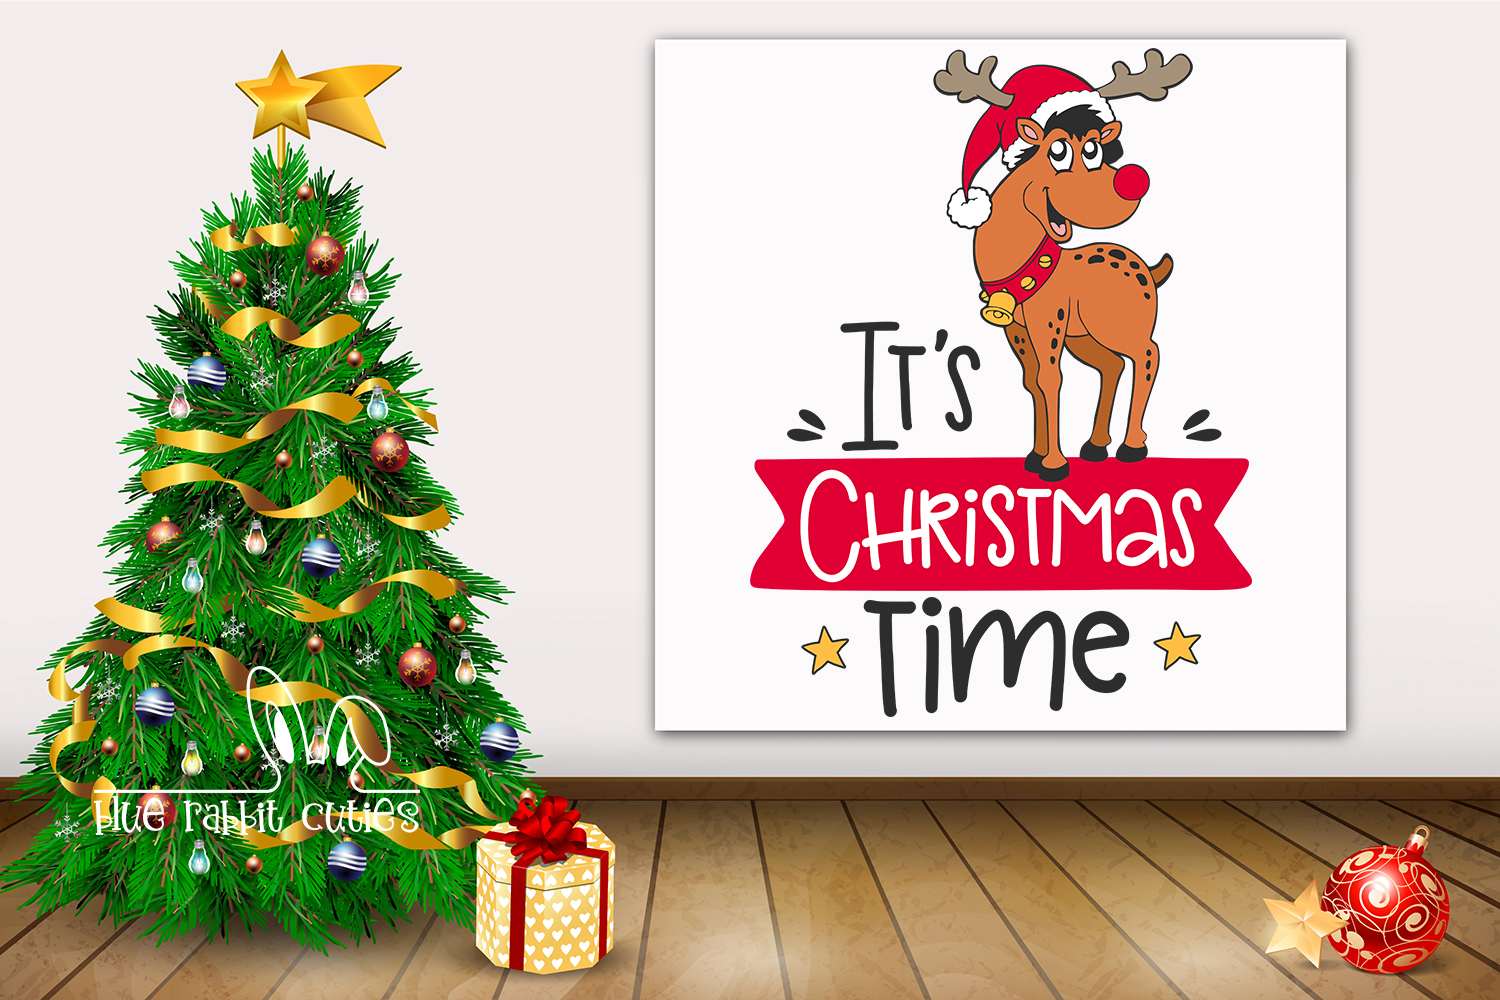 It's Christmas Time with Cute Reindeer SVG - Xmas cut files example image 2